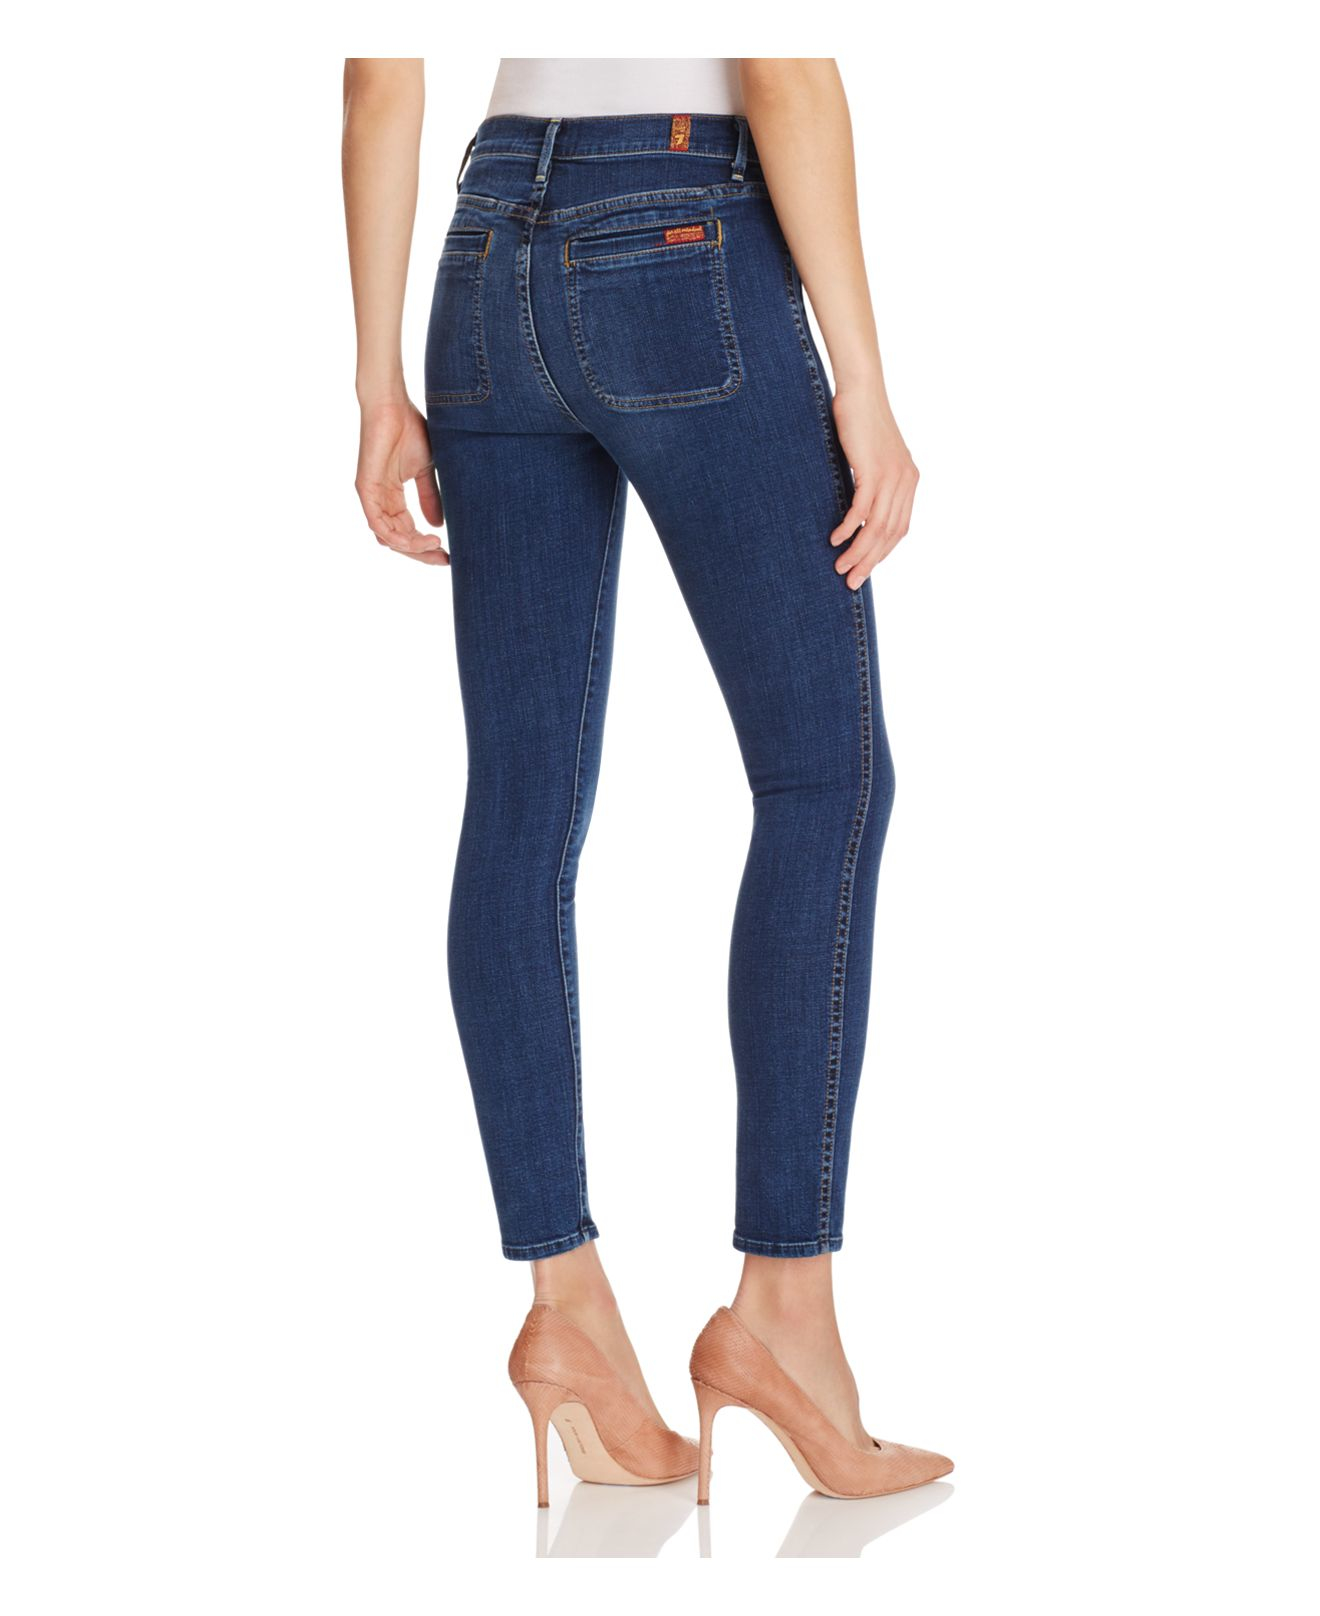 7 For All Mankind Denim Exposed Button Skinny Jeans In La Palma - Compare At $198 in Blue